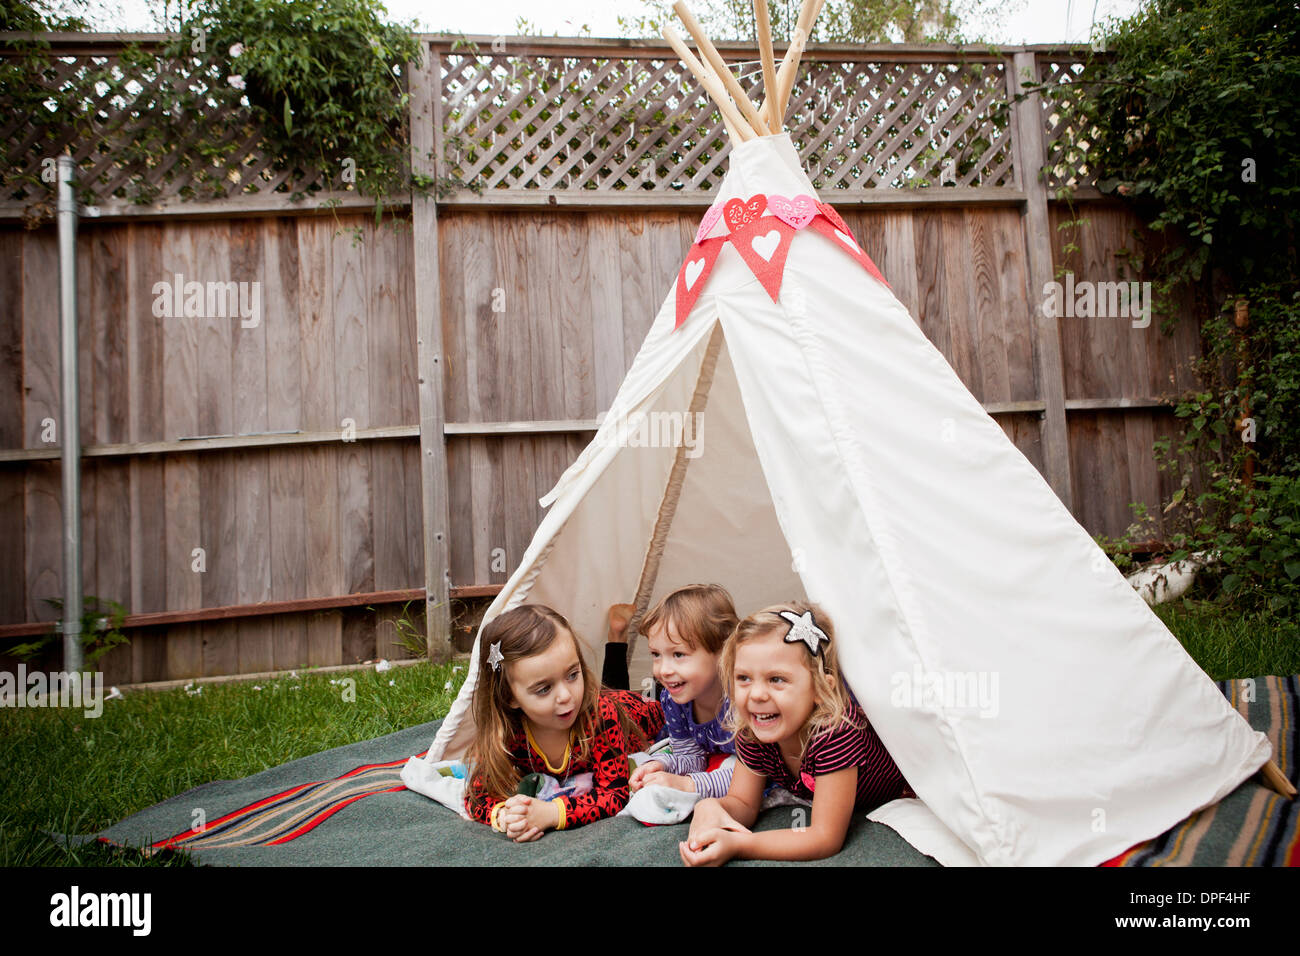 Three young girls lying in teepee in garden - Stock Image